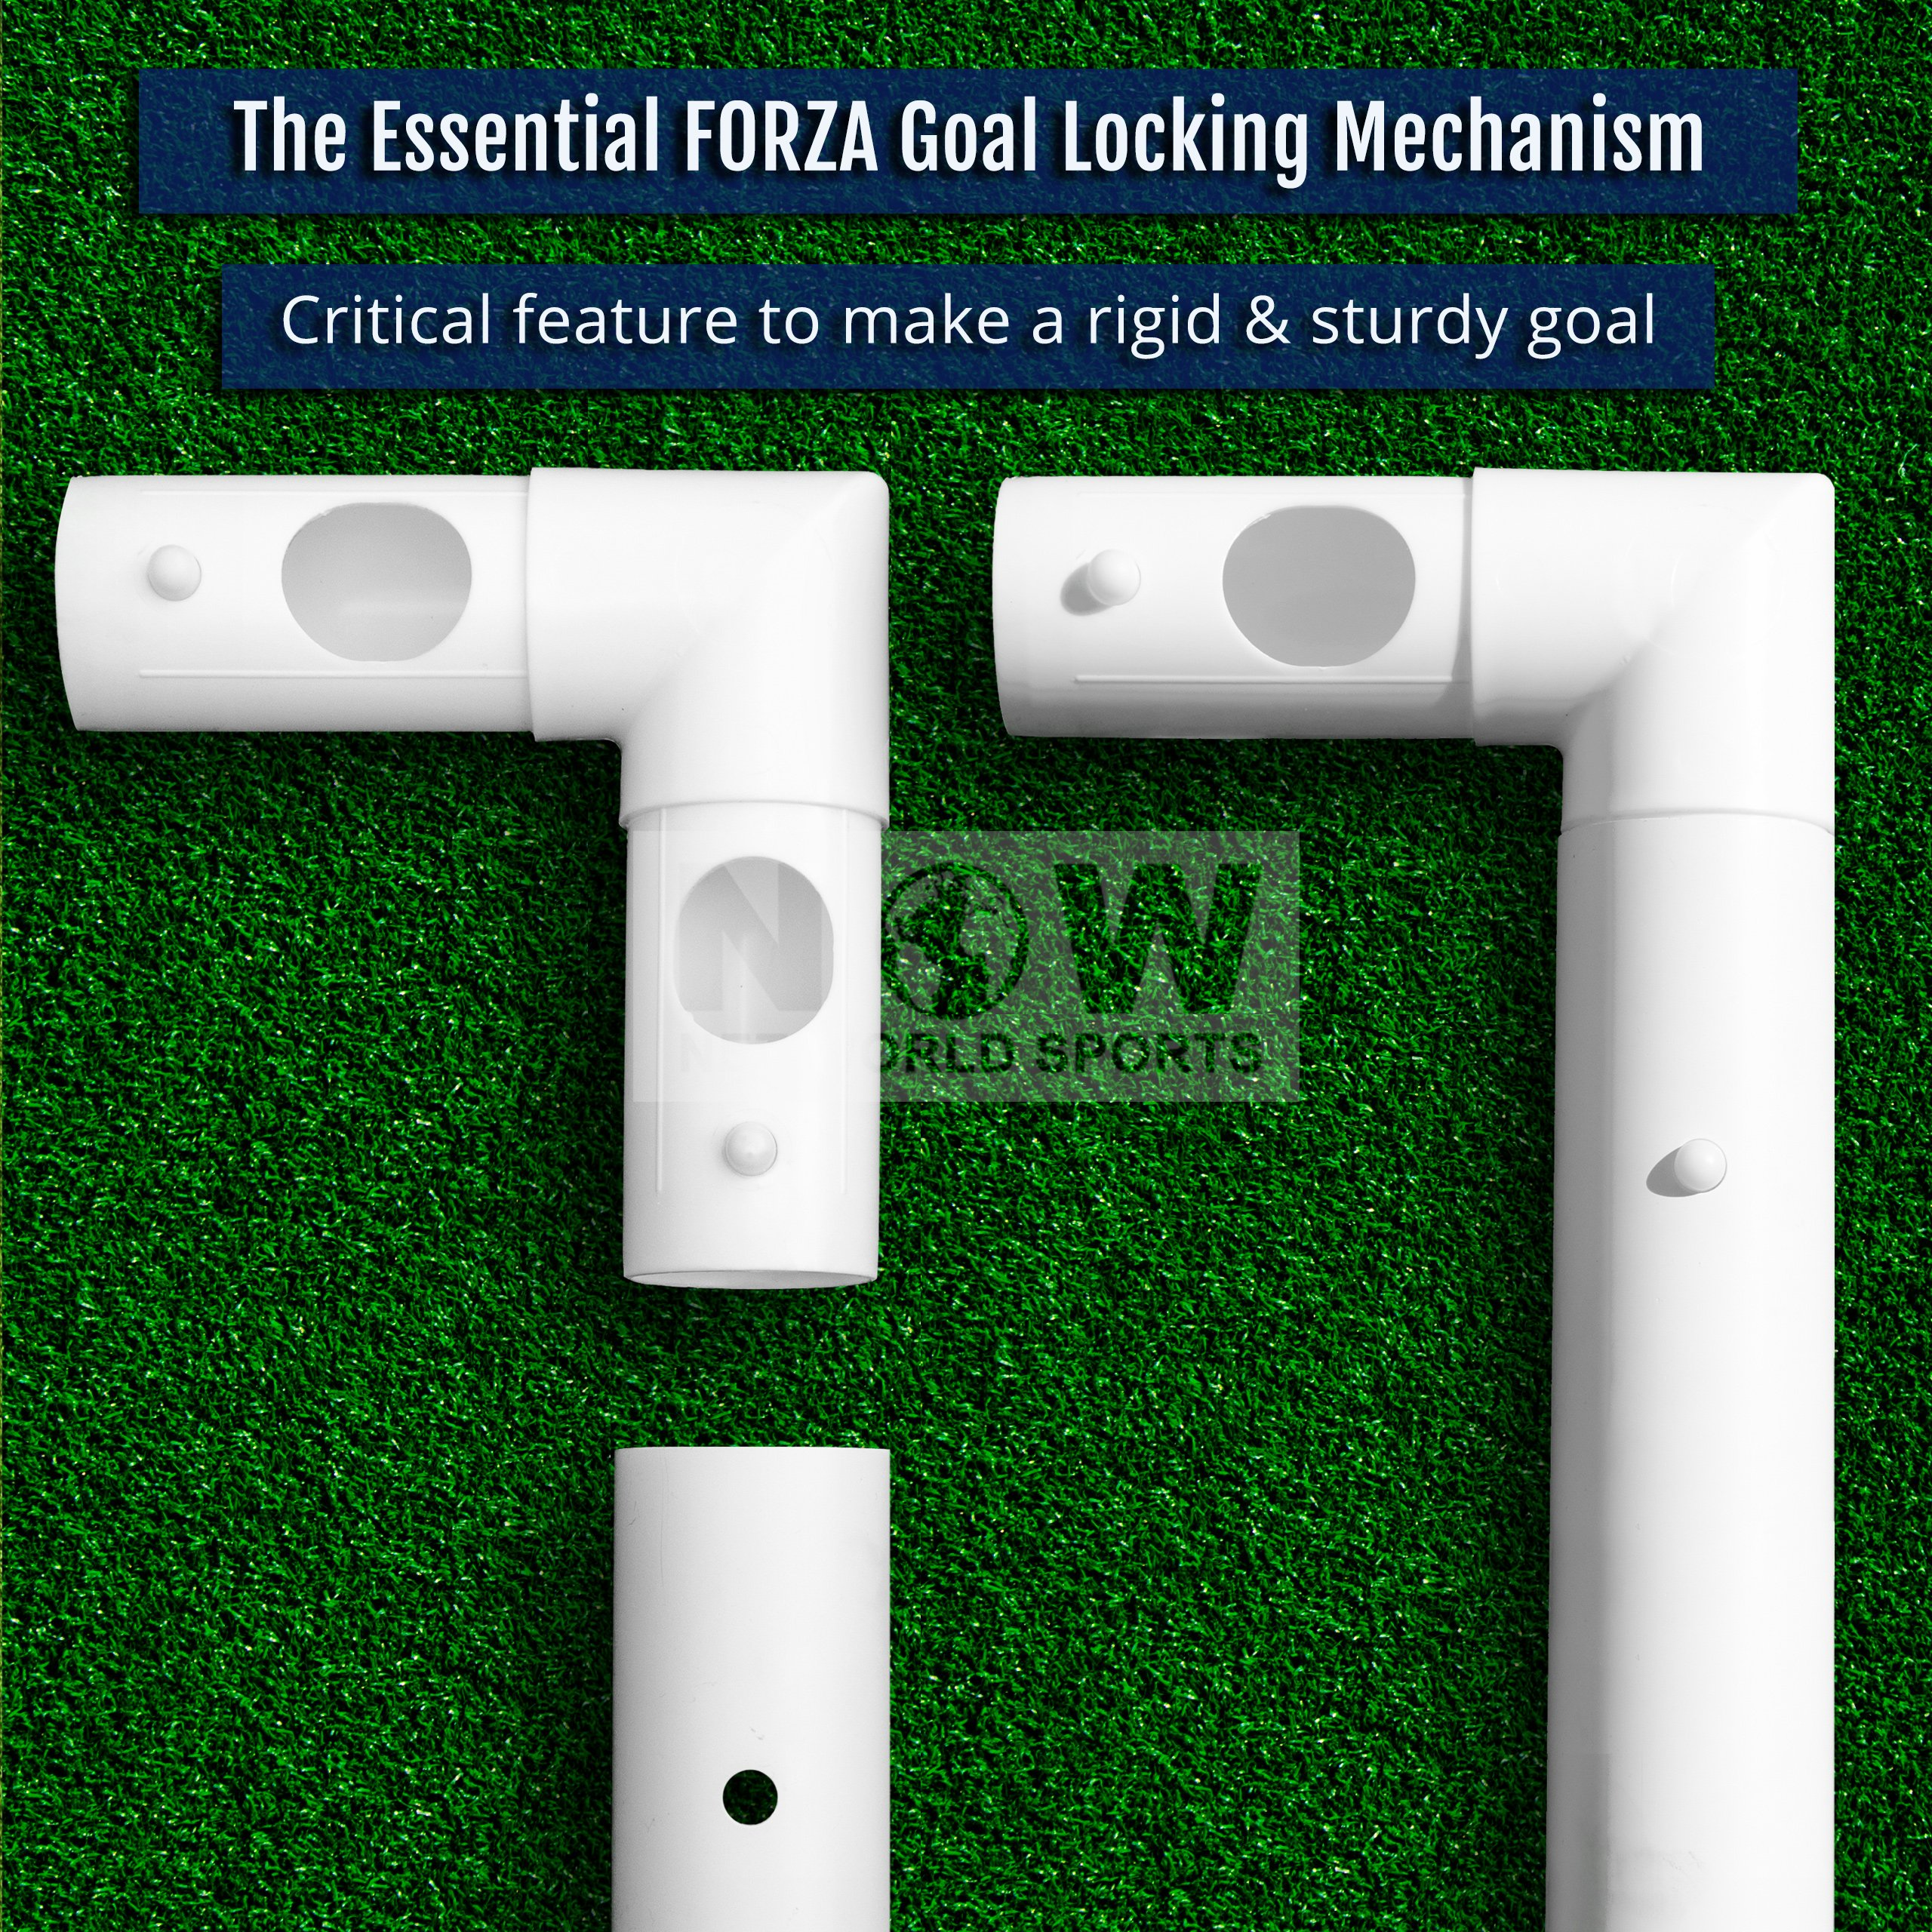 FORZA ''Match Standard'' 12' x 6' Professional Soccer Goal and Net - The Best Goal That Money Can Buy! (12 x 6 FORZA Goal & Carry Bag) by Net World Sports (Image #3)